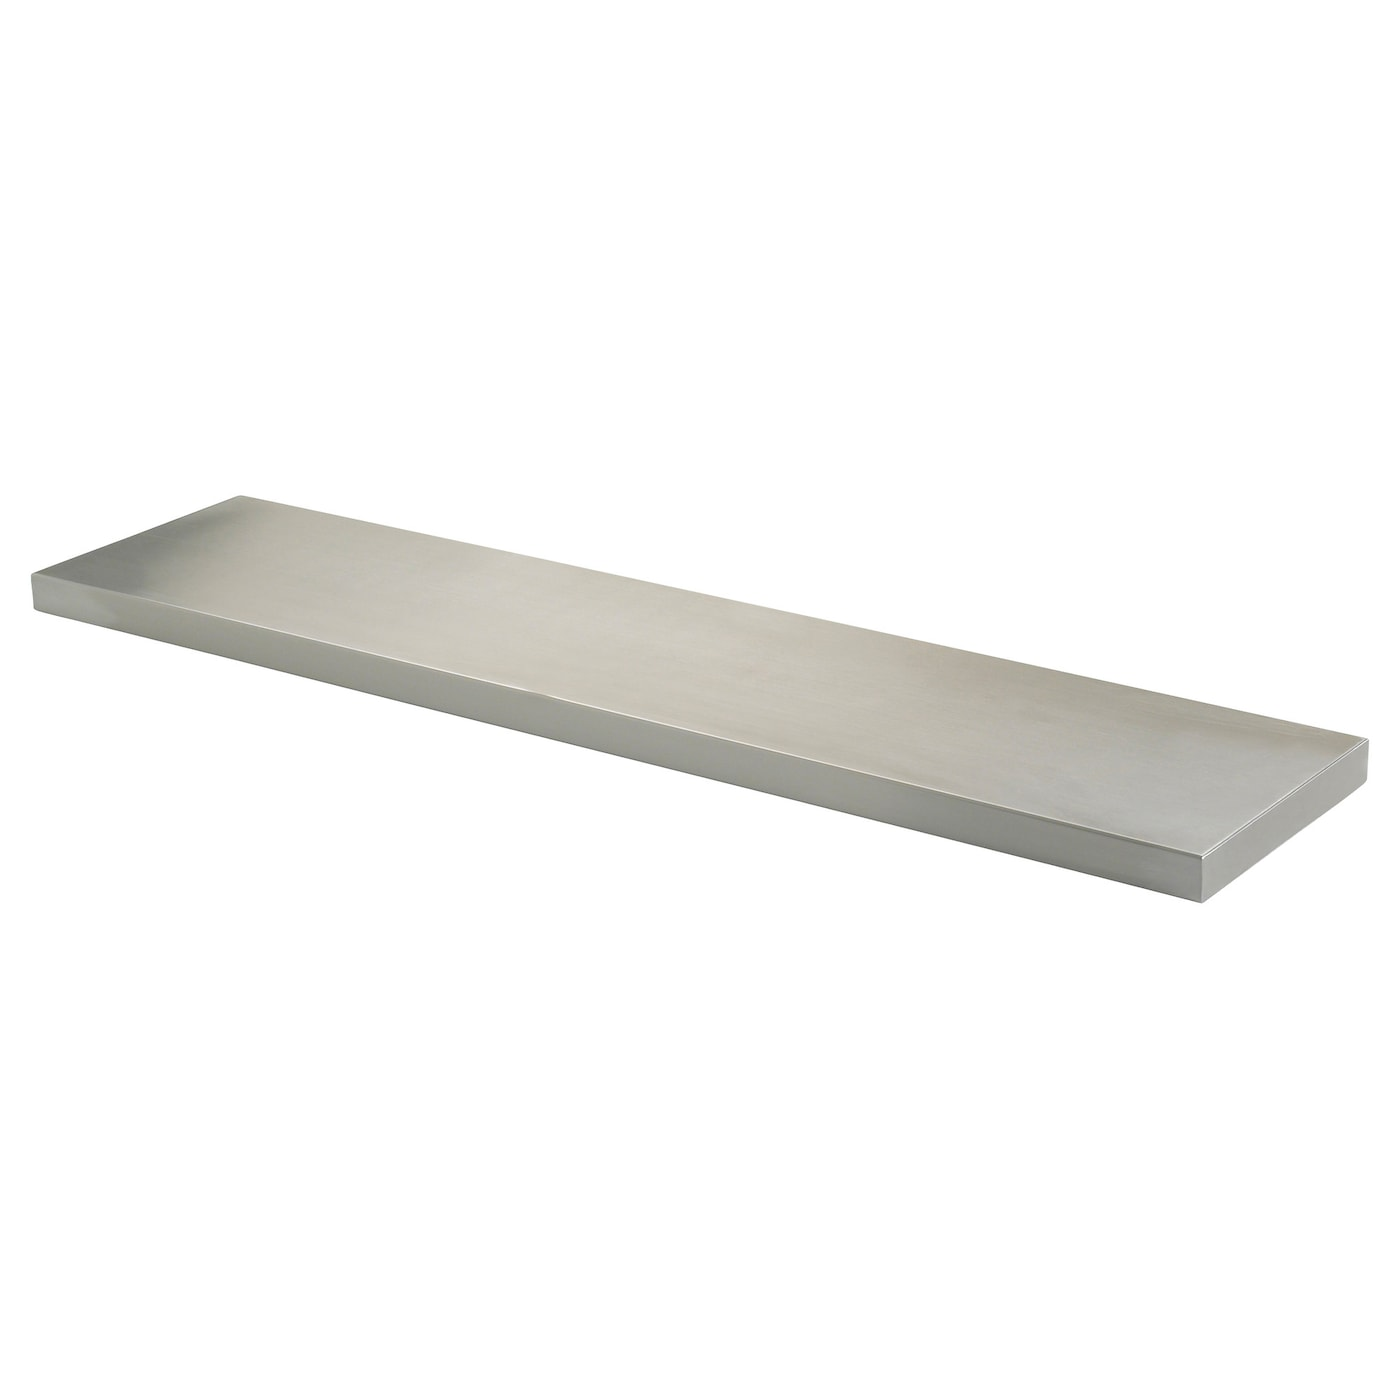 ekby mossby shelf stainless steel 79 x 19 cm ikea rh ikea com ikea stainless steel shelves for kitchen ikea shelves stainless steel